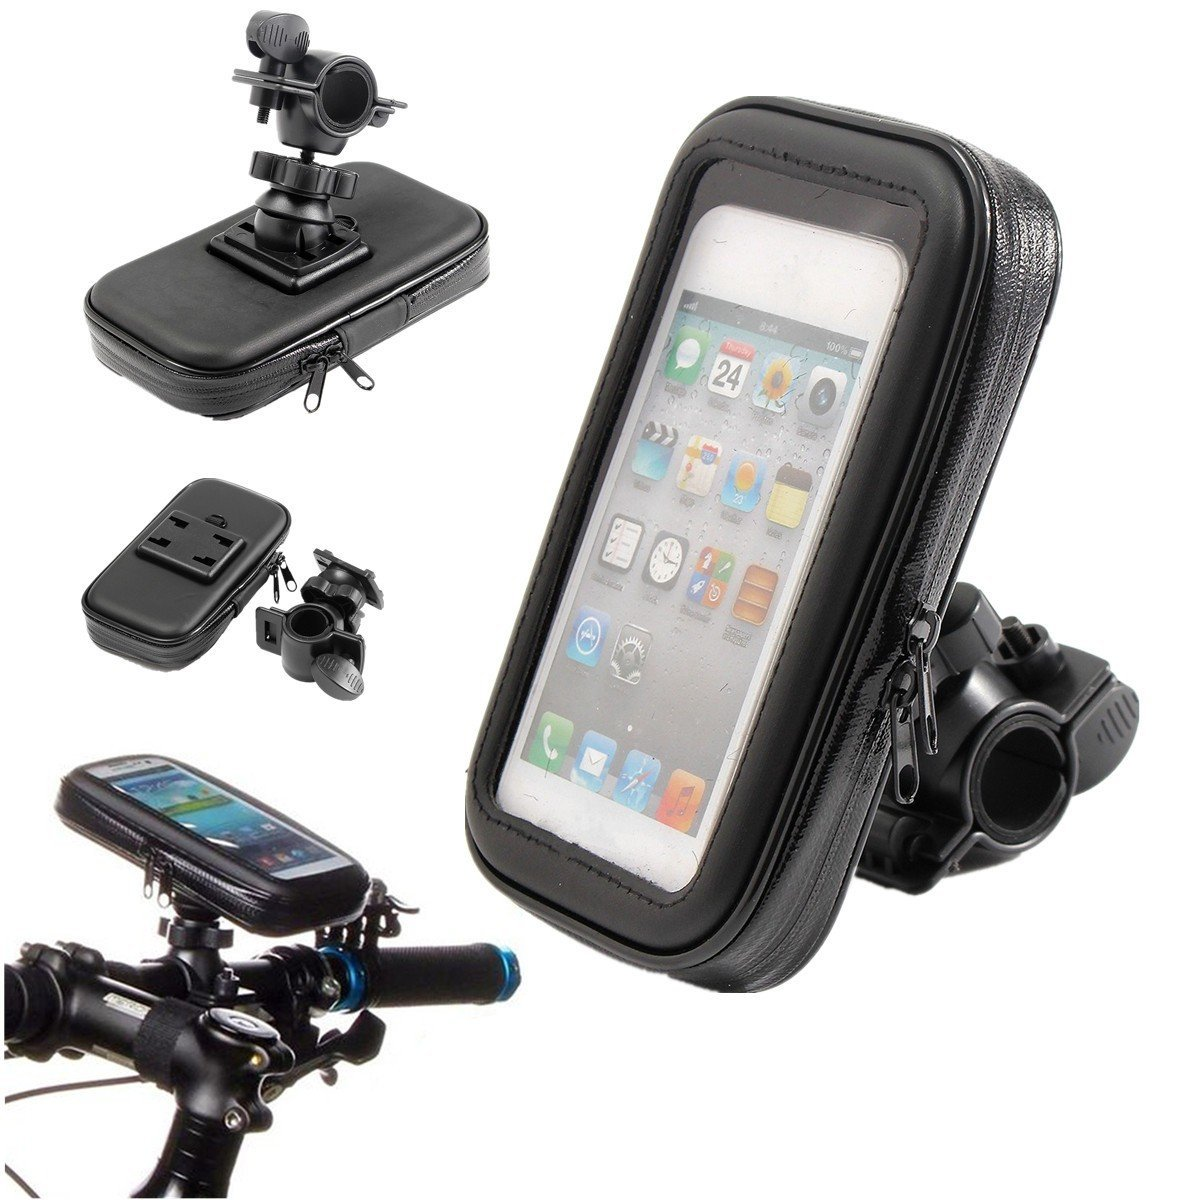 M.Way Motorcycle Bike Handlebar Holder Mount 360 Degree Rotation Waterproof Shockproof Dustproof Mount Bag Case Cover Stand Kit For Mobile Phone GPS XL